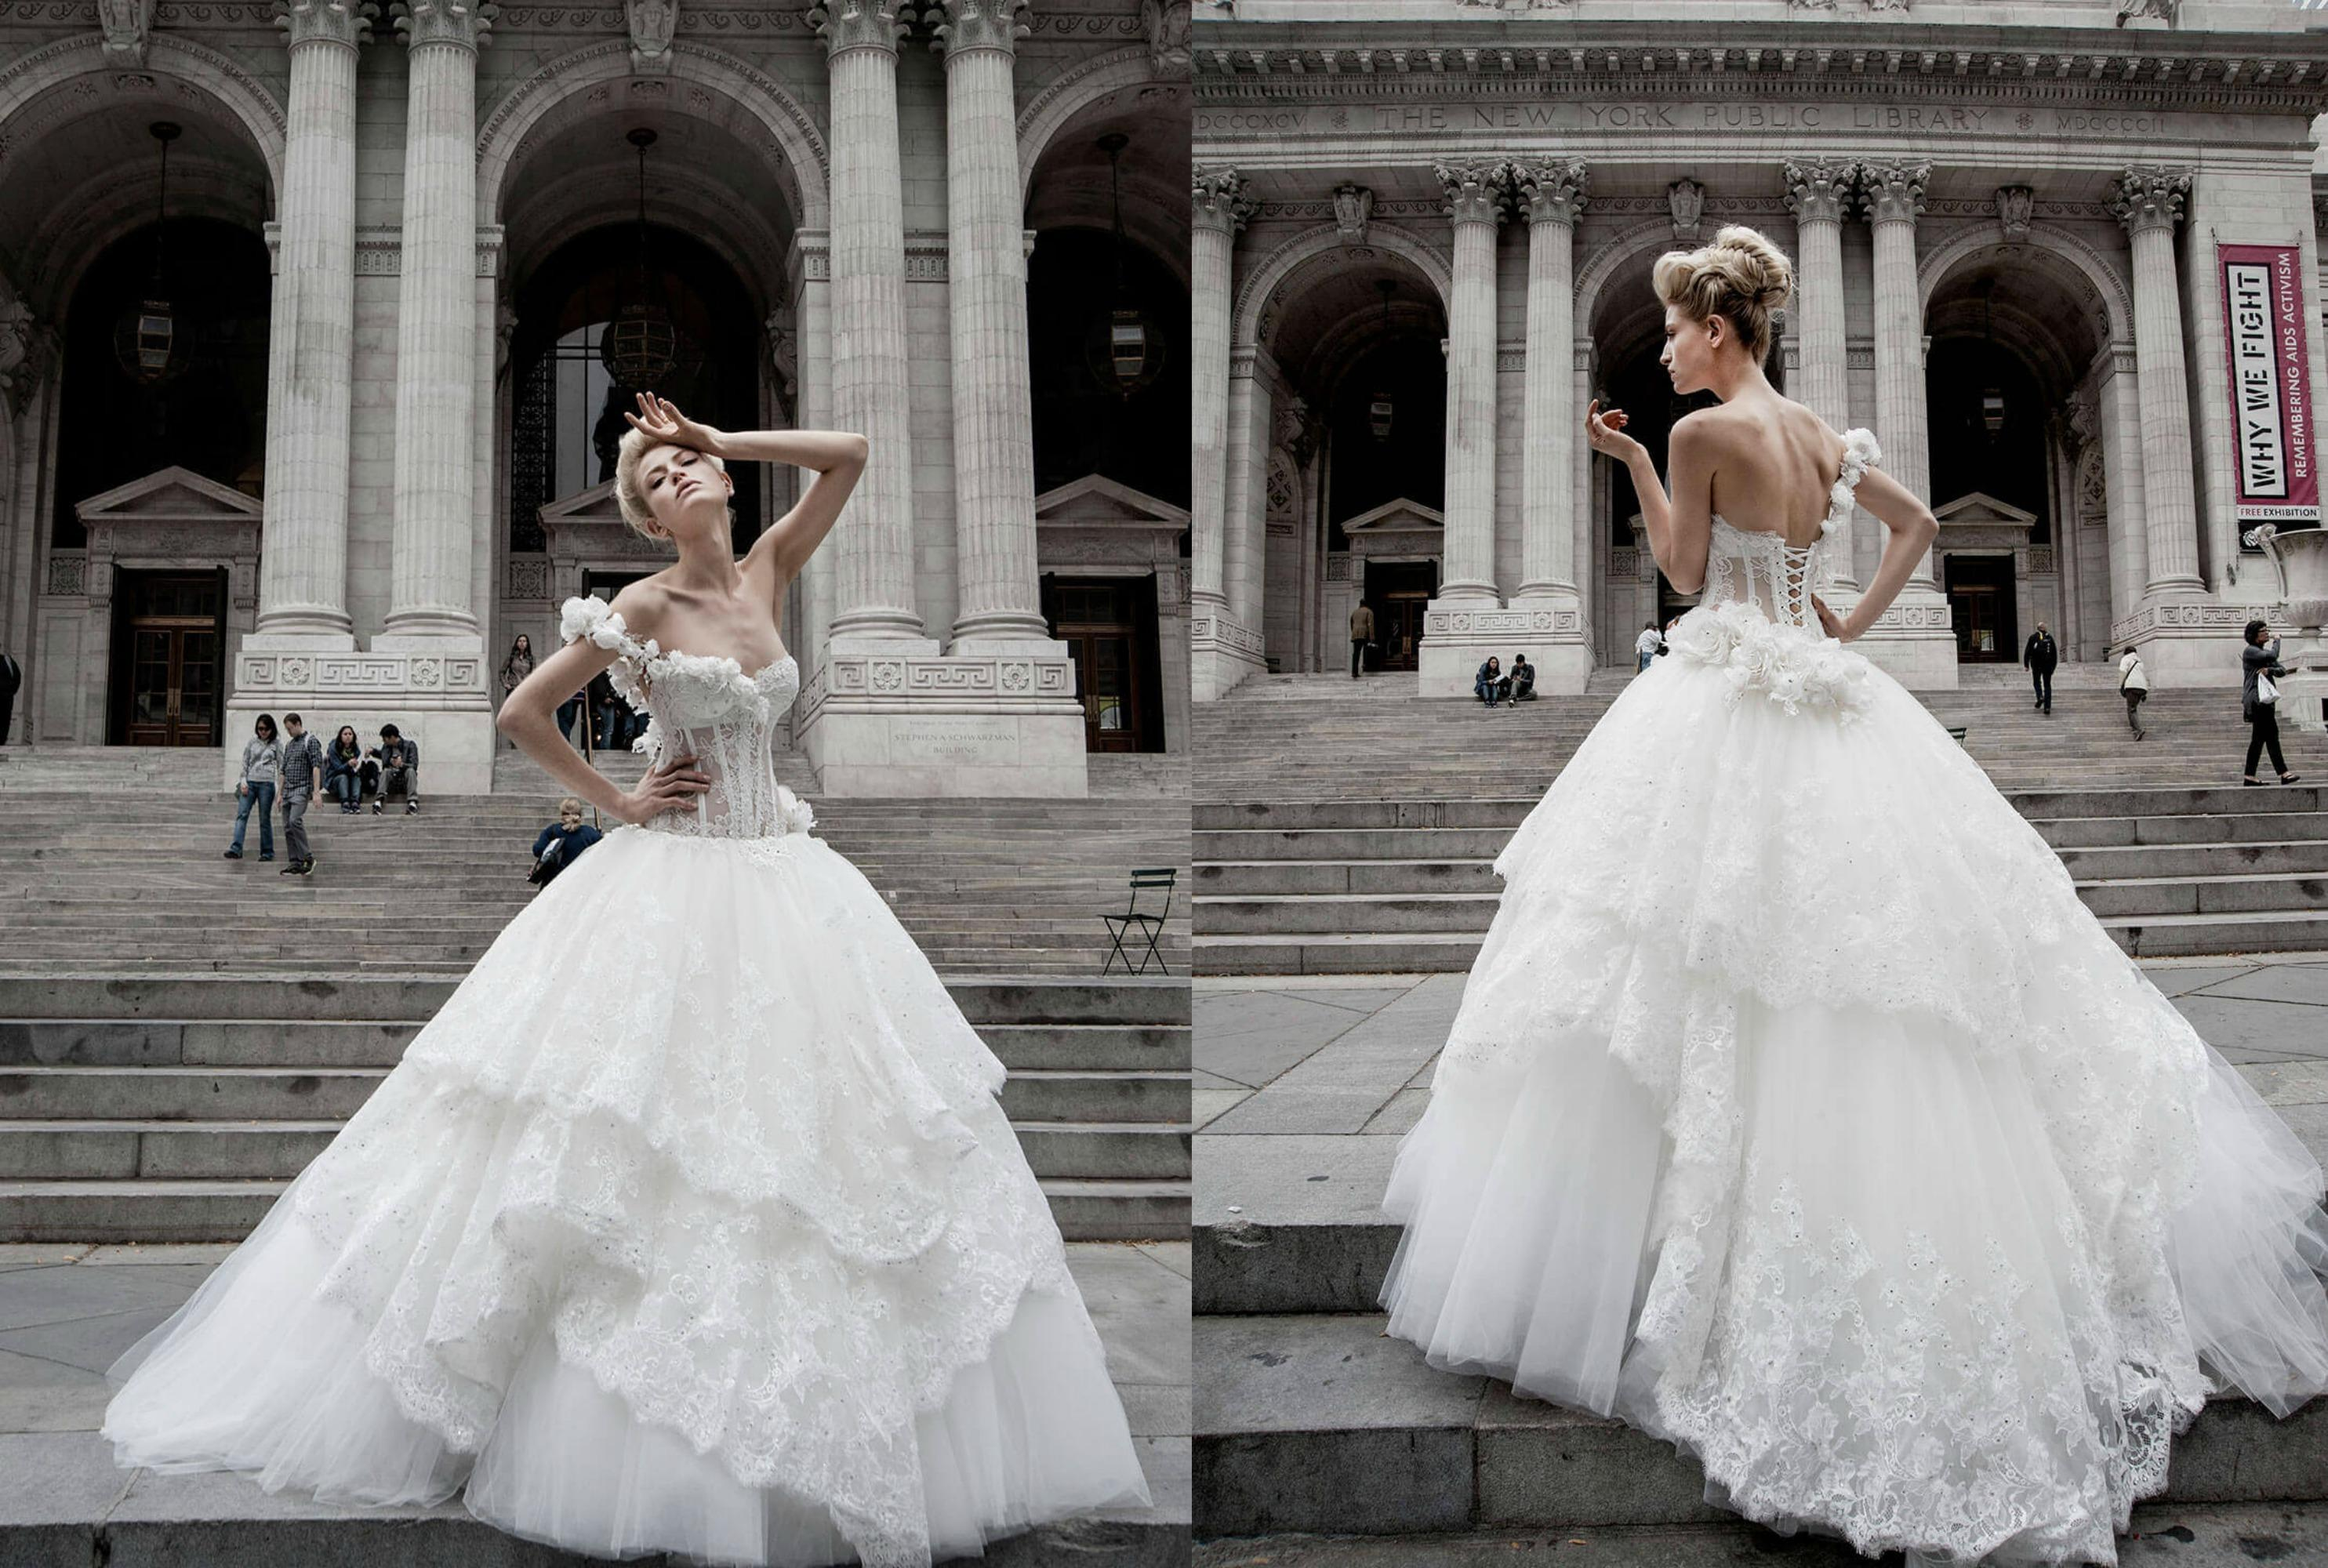 Pnina Tornai's Favorite Ball Gowns